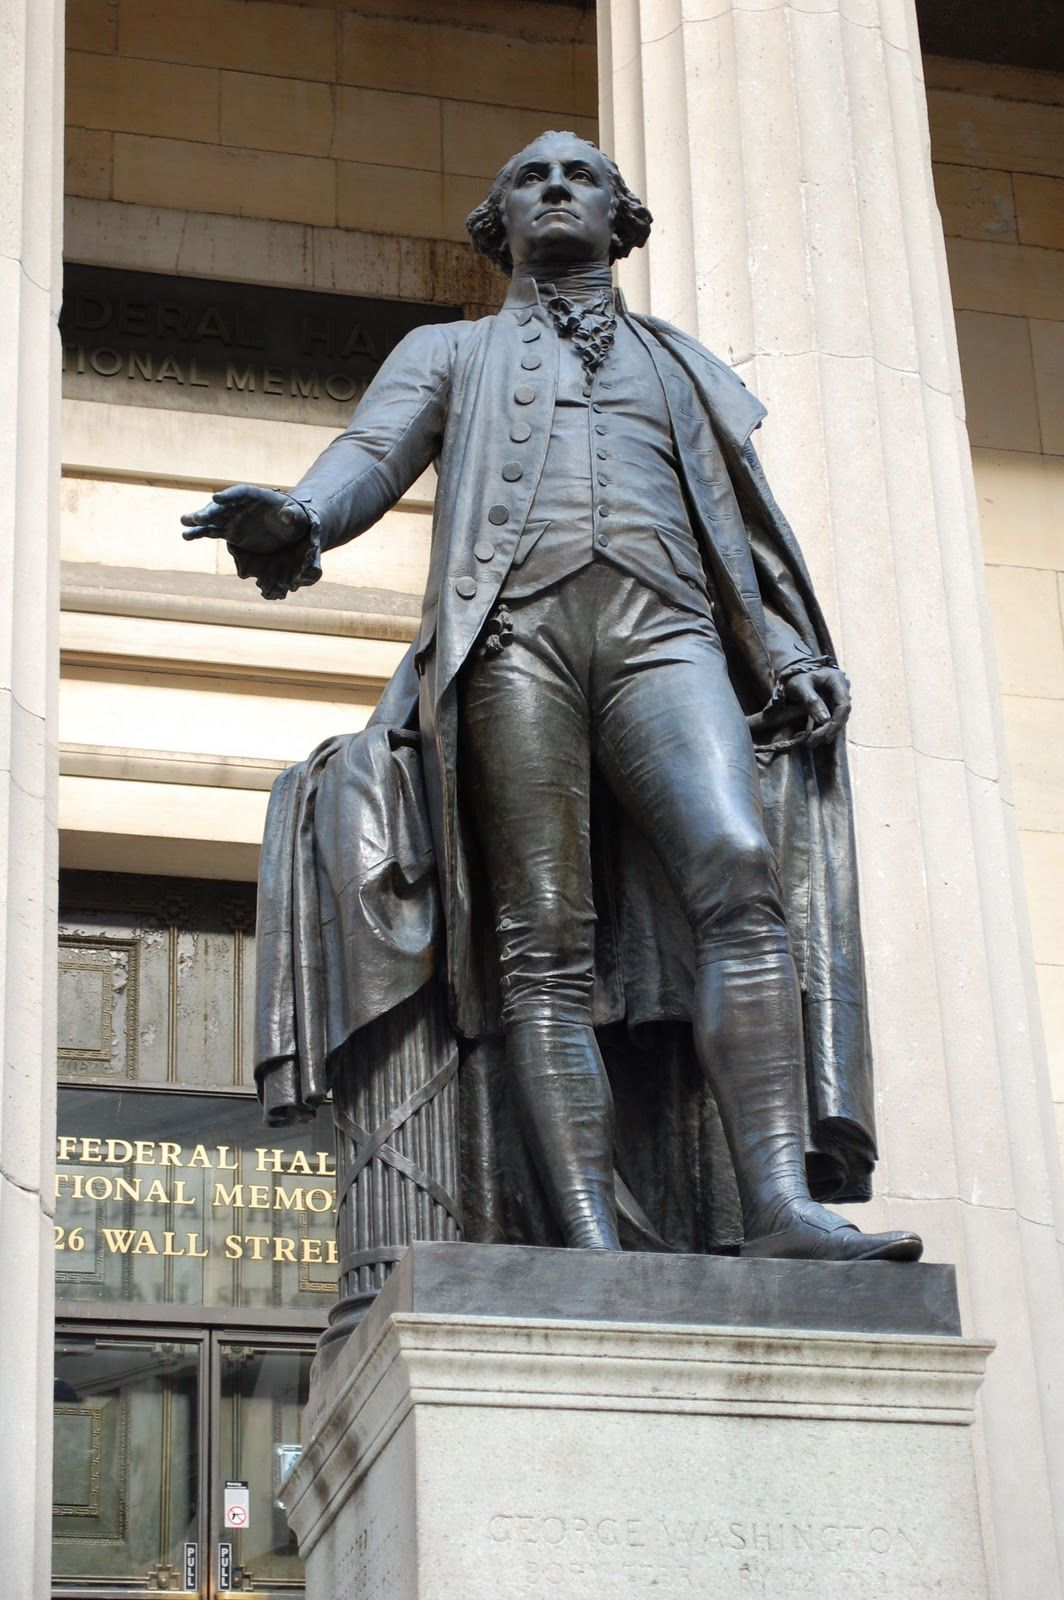 This Is The Statue Of George Washington At Federal Hall Across From The Wall Street Stock Exchange Washington Was Inaugurated Here In 1789 With Images Statue